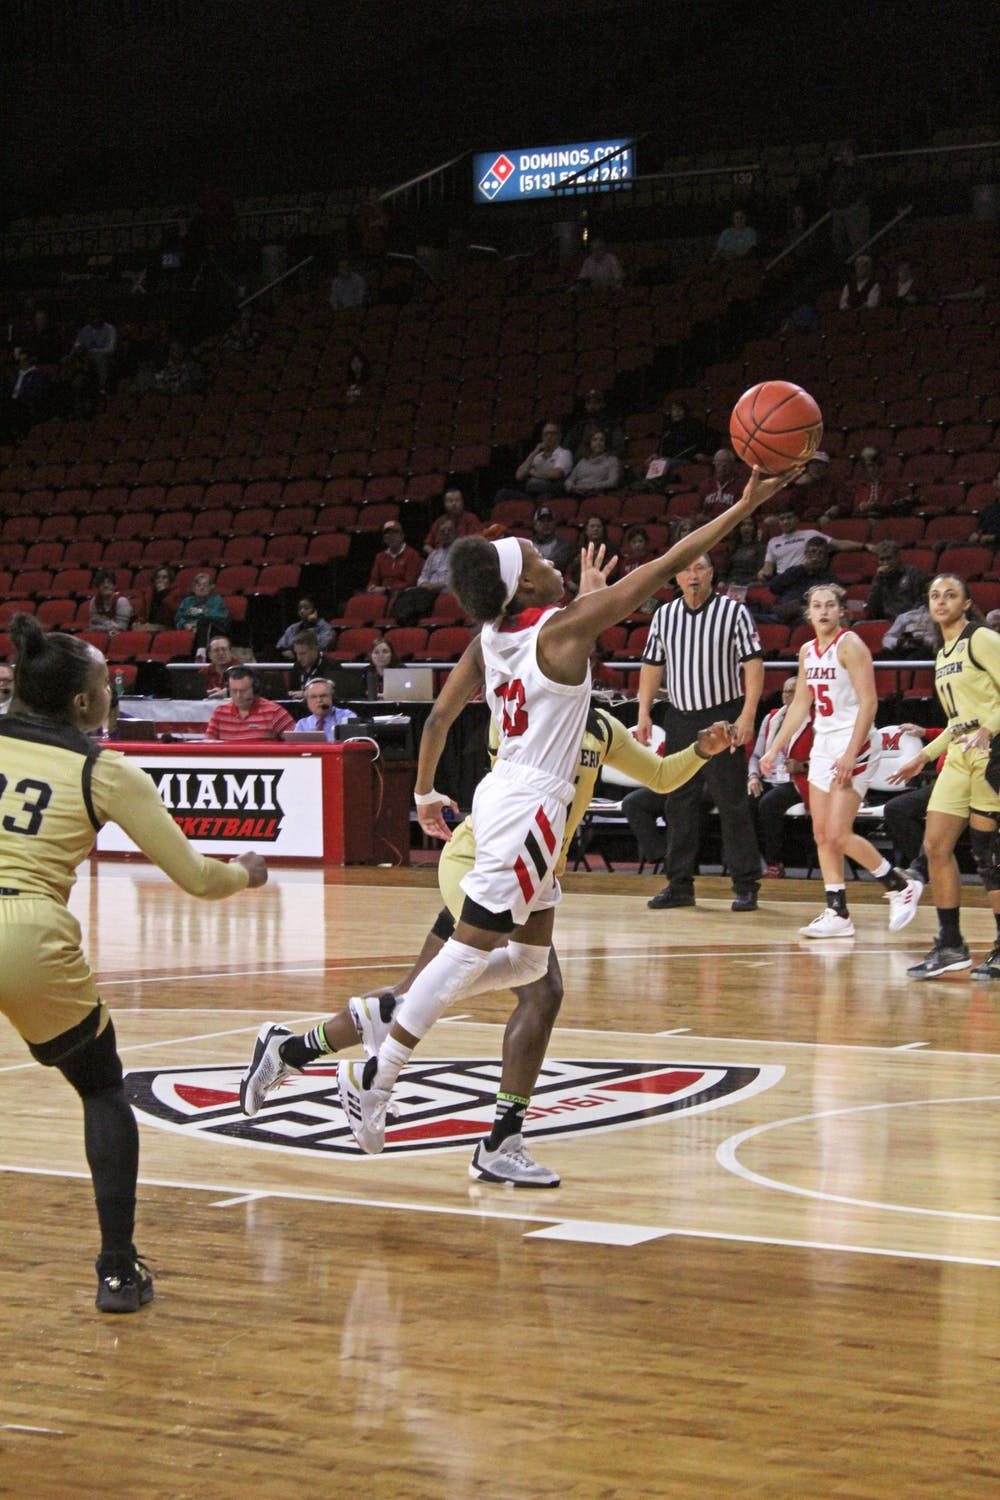 <p>Senior guard Lauren Dickerson attempts a layup in a 70-67 Miami victory over Western Michigan Feb. 3 at Millett Hall.</p>